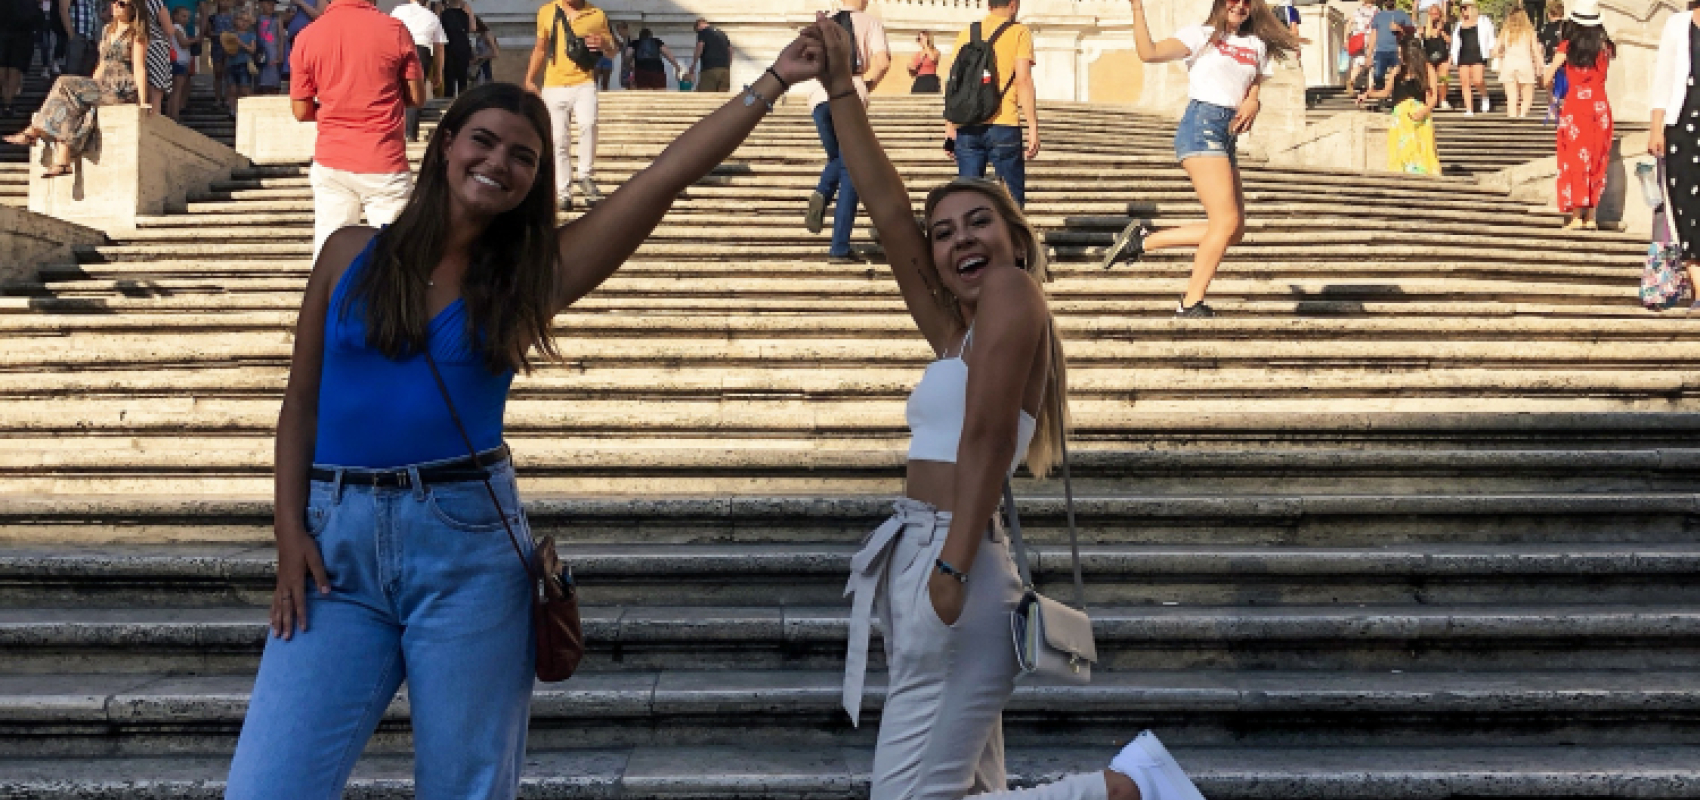 Students on steps in Rome